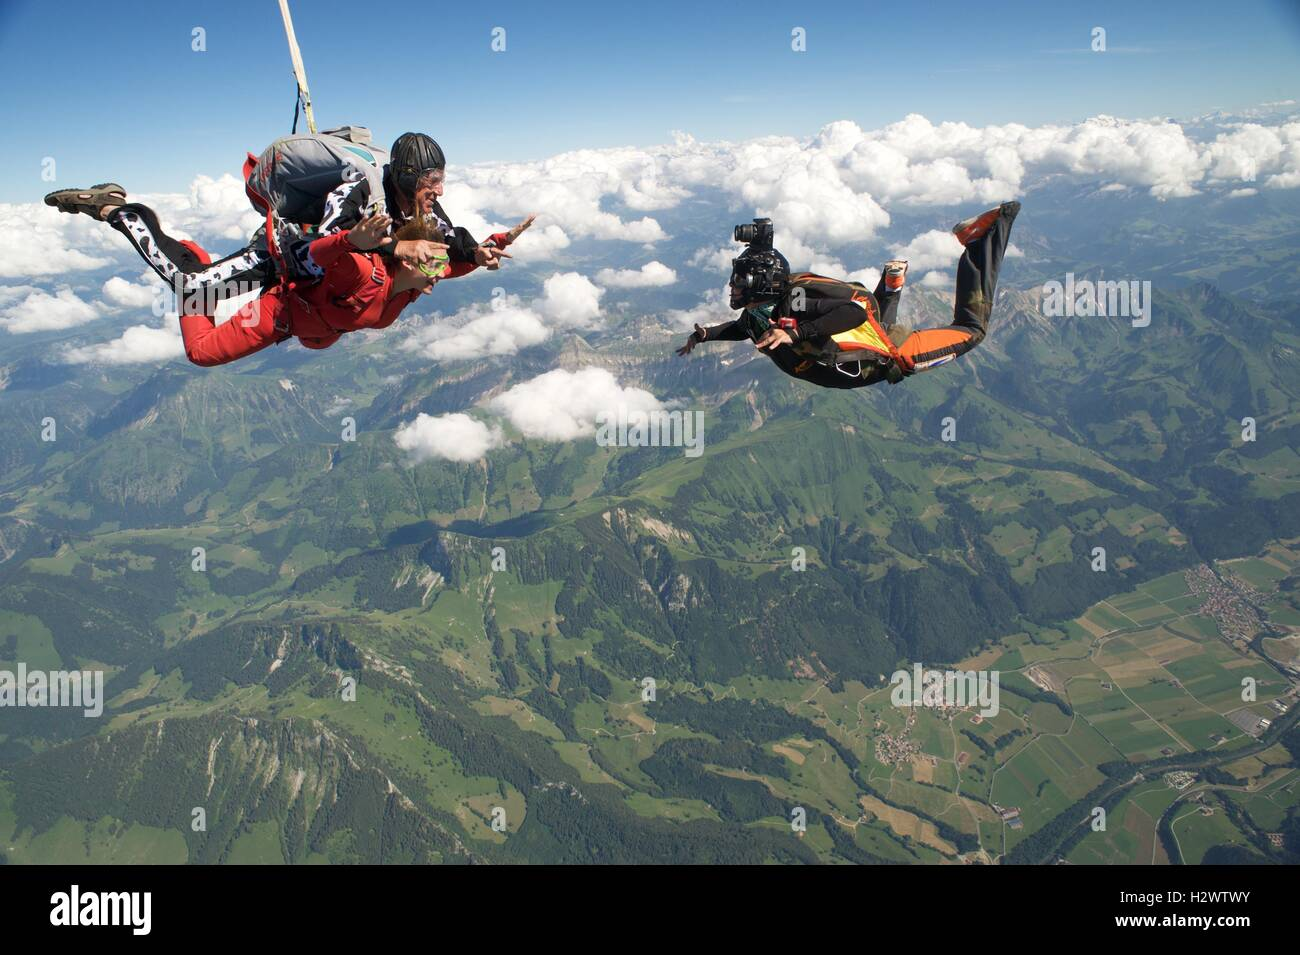 Camera flyer with a tandem pair in freefall - Stock Image